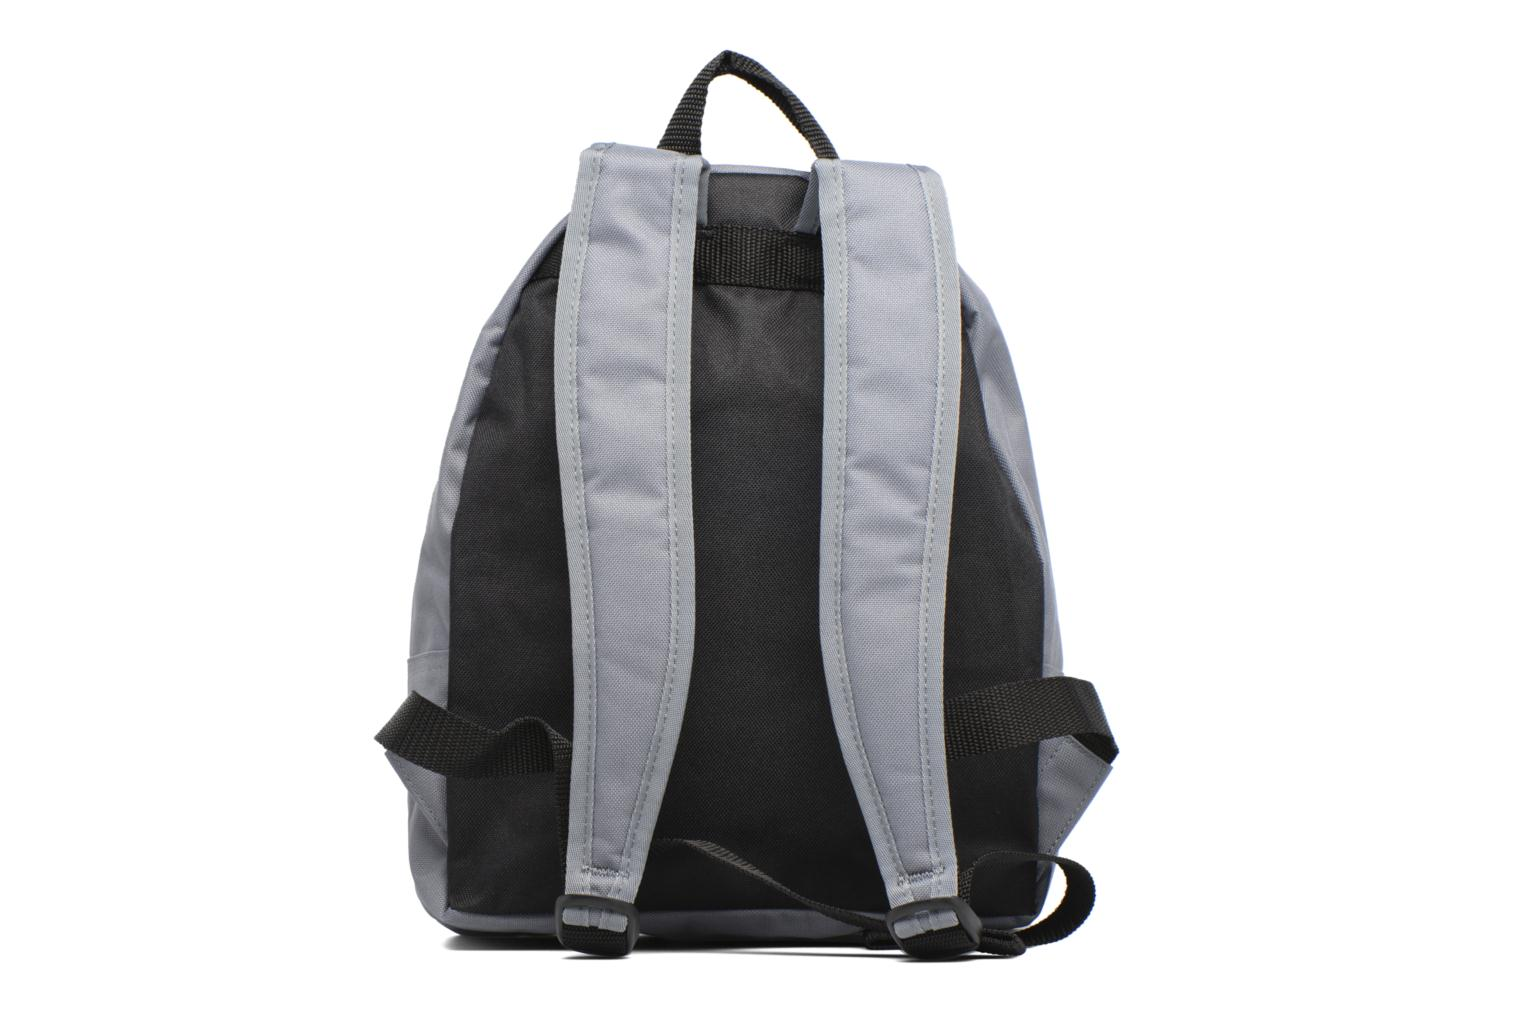 Sacs à dos Nike Kids' Nike Classic Backpack Gris vue face